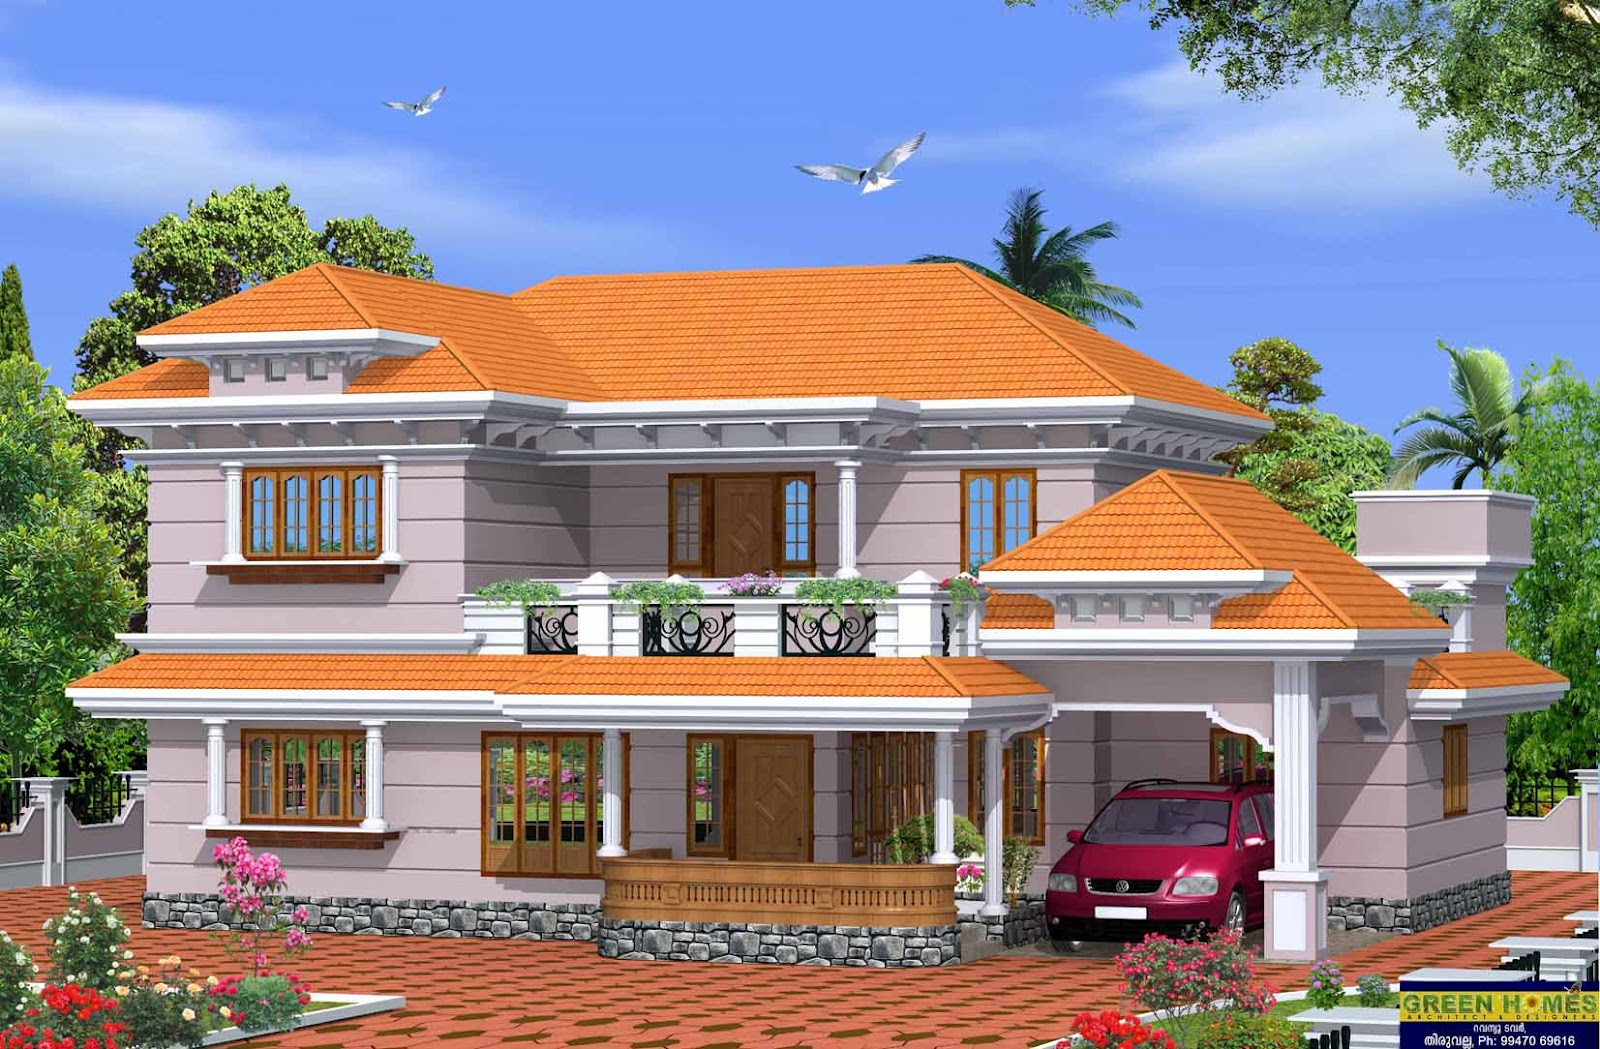 Green homes beautiful 4 bhk kerala model home 2750 for Beautiful model house